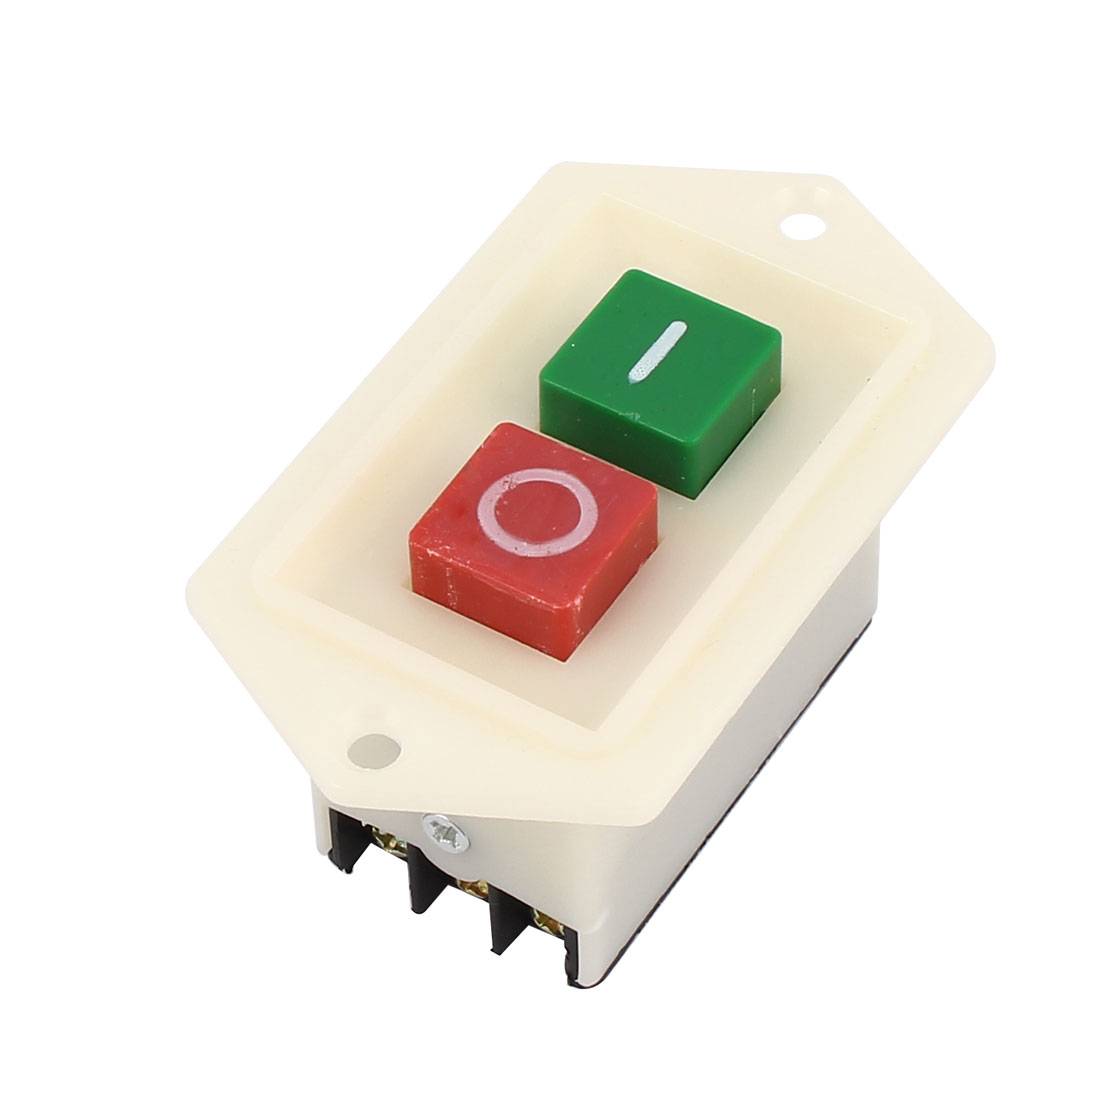 AC 380V 10A ON/OFF 2 Position 3 Phase Power Push Button Switch LBC3-10